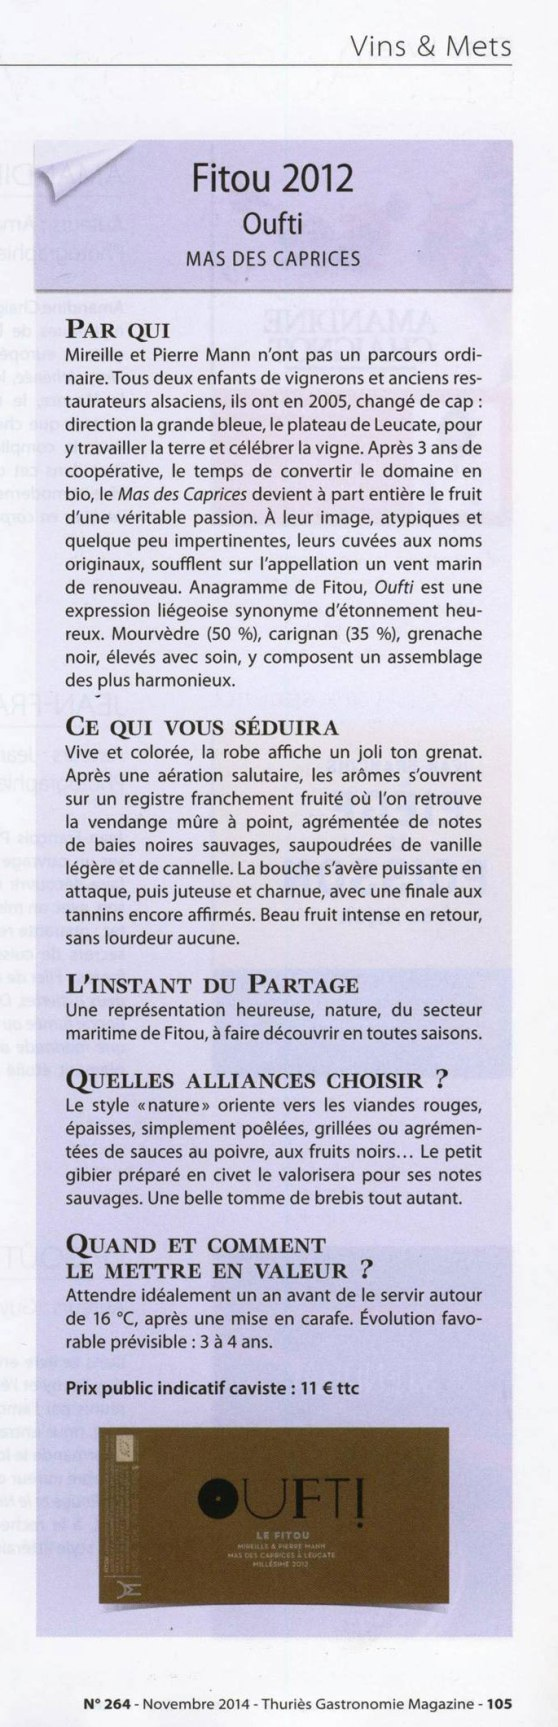 Oufti sur Thuries magazine